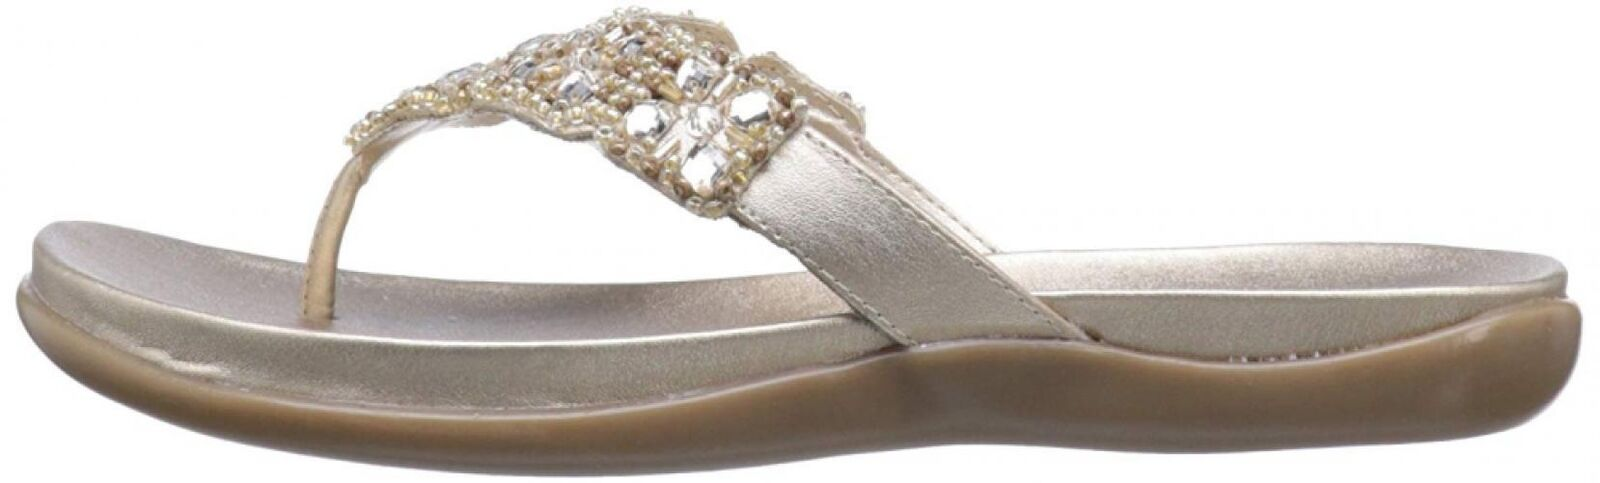 Kenneth Cole REACTION Donna  Glam-Athon Flat Flat Flat Sandal dac8b7